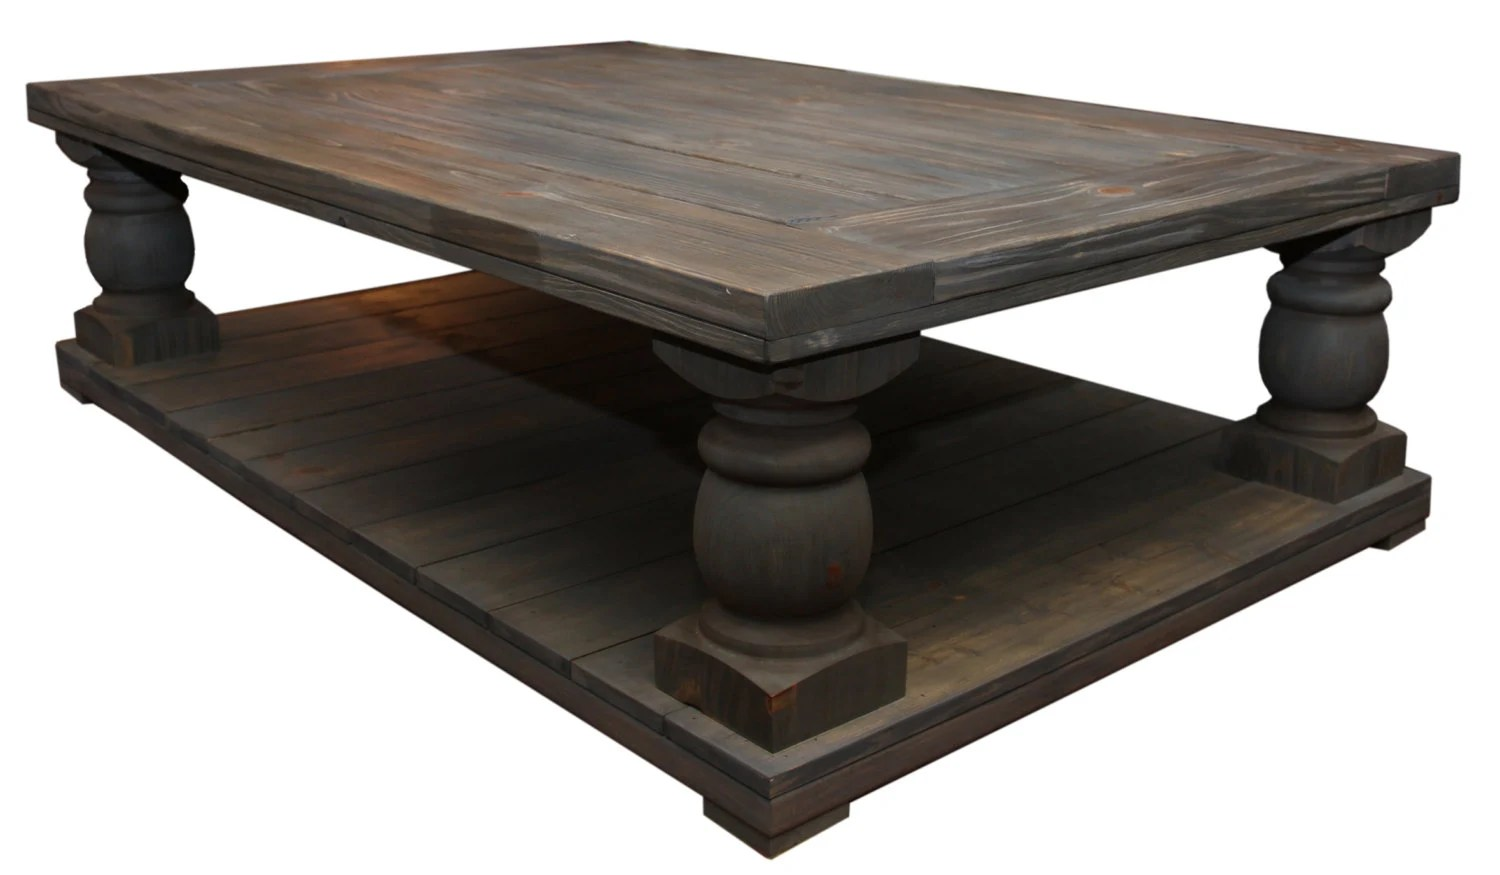 Oversized aged rustic wood coffee table